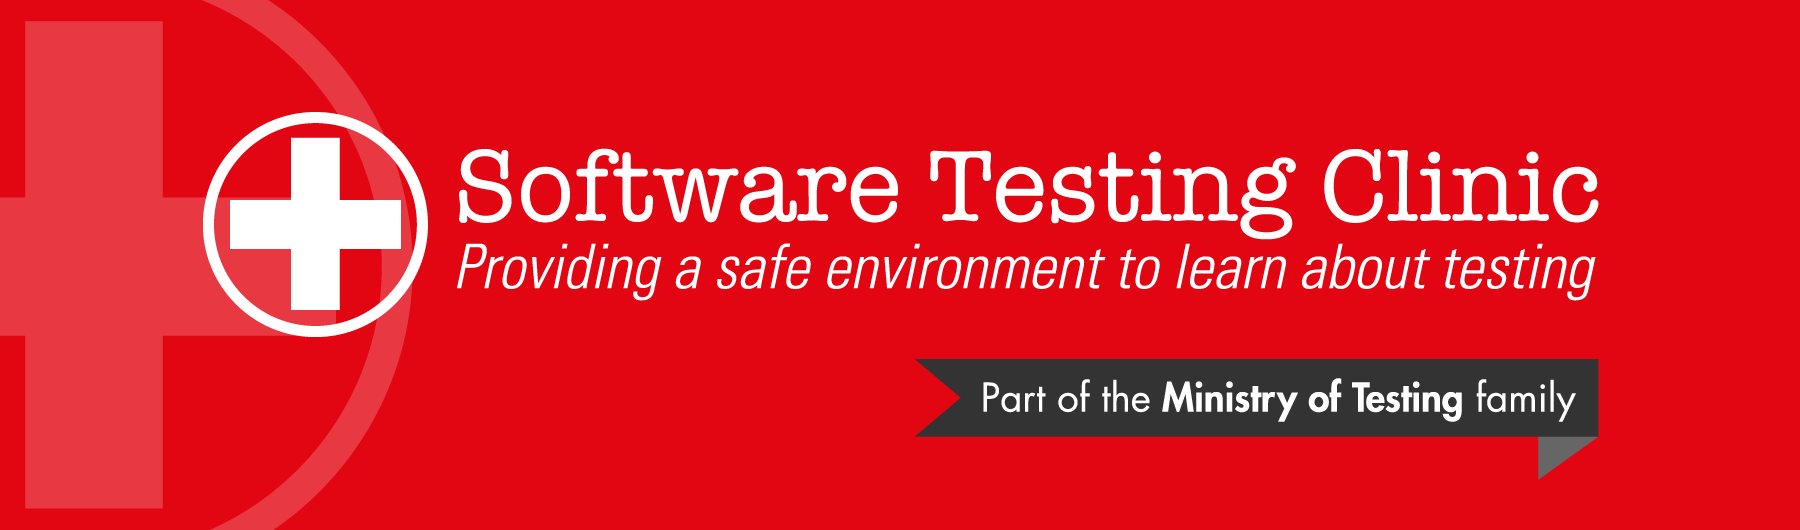 Software Testing Clinic Manchester